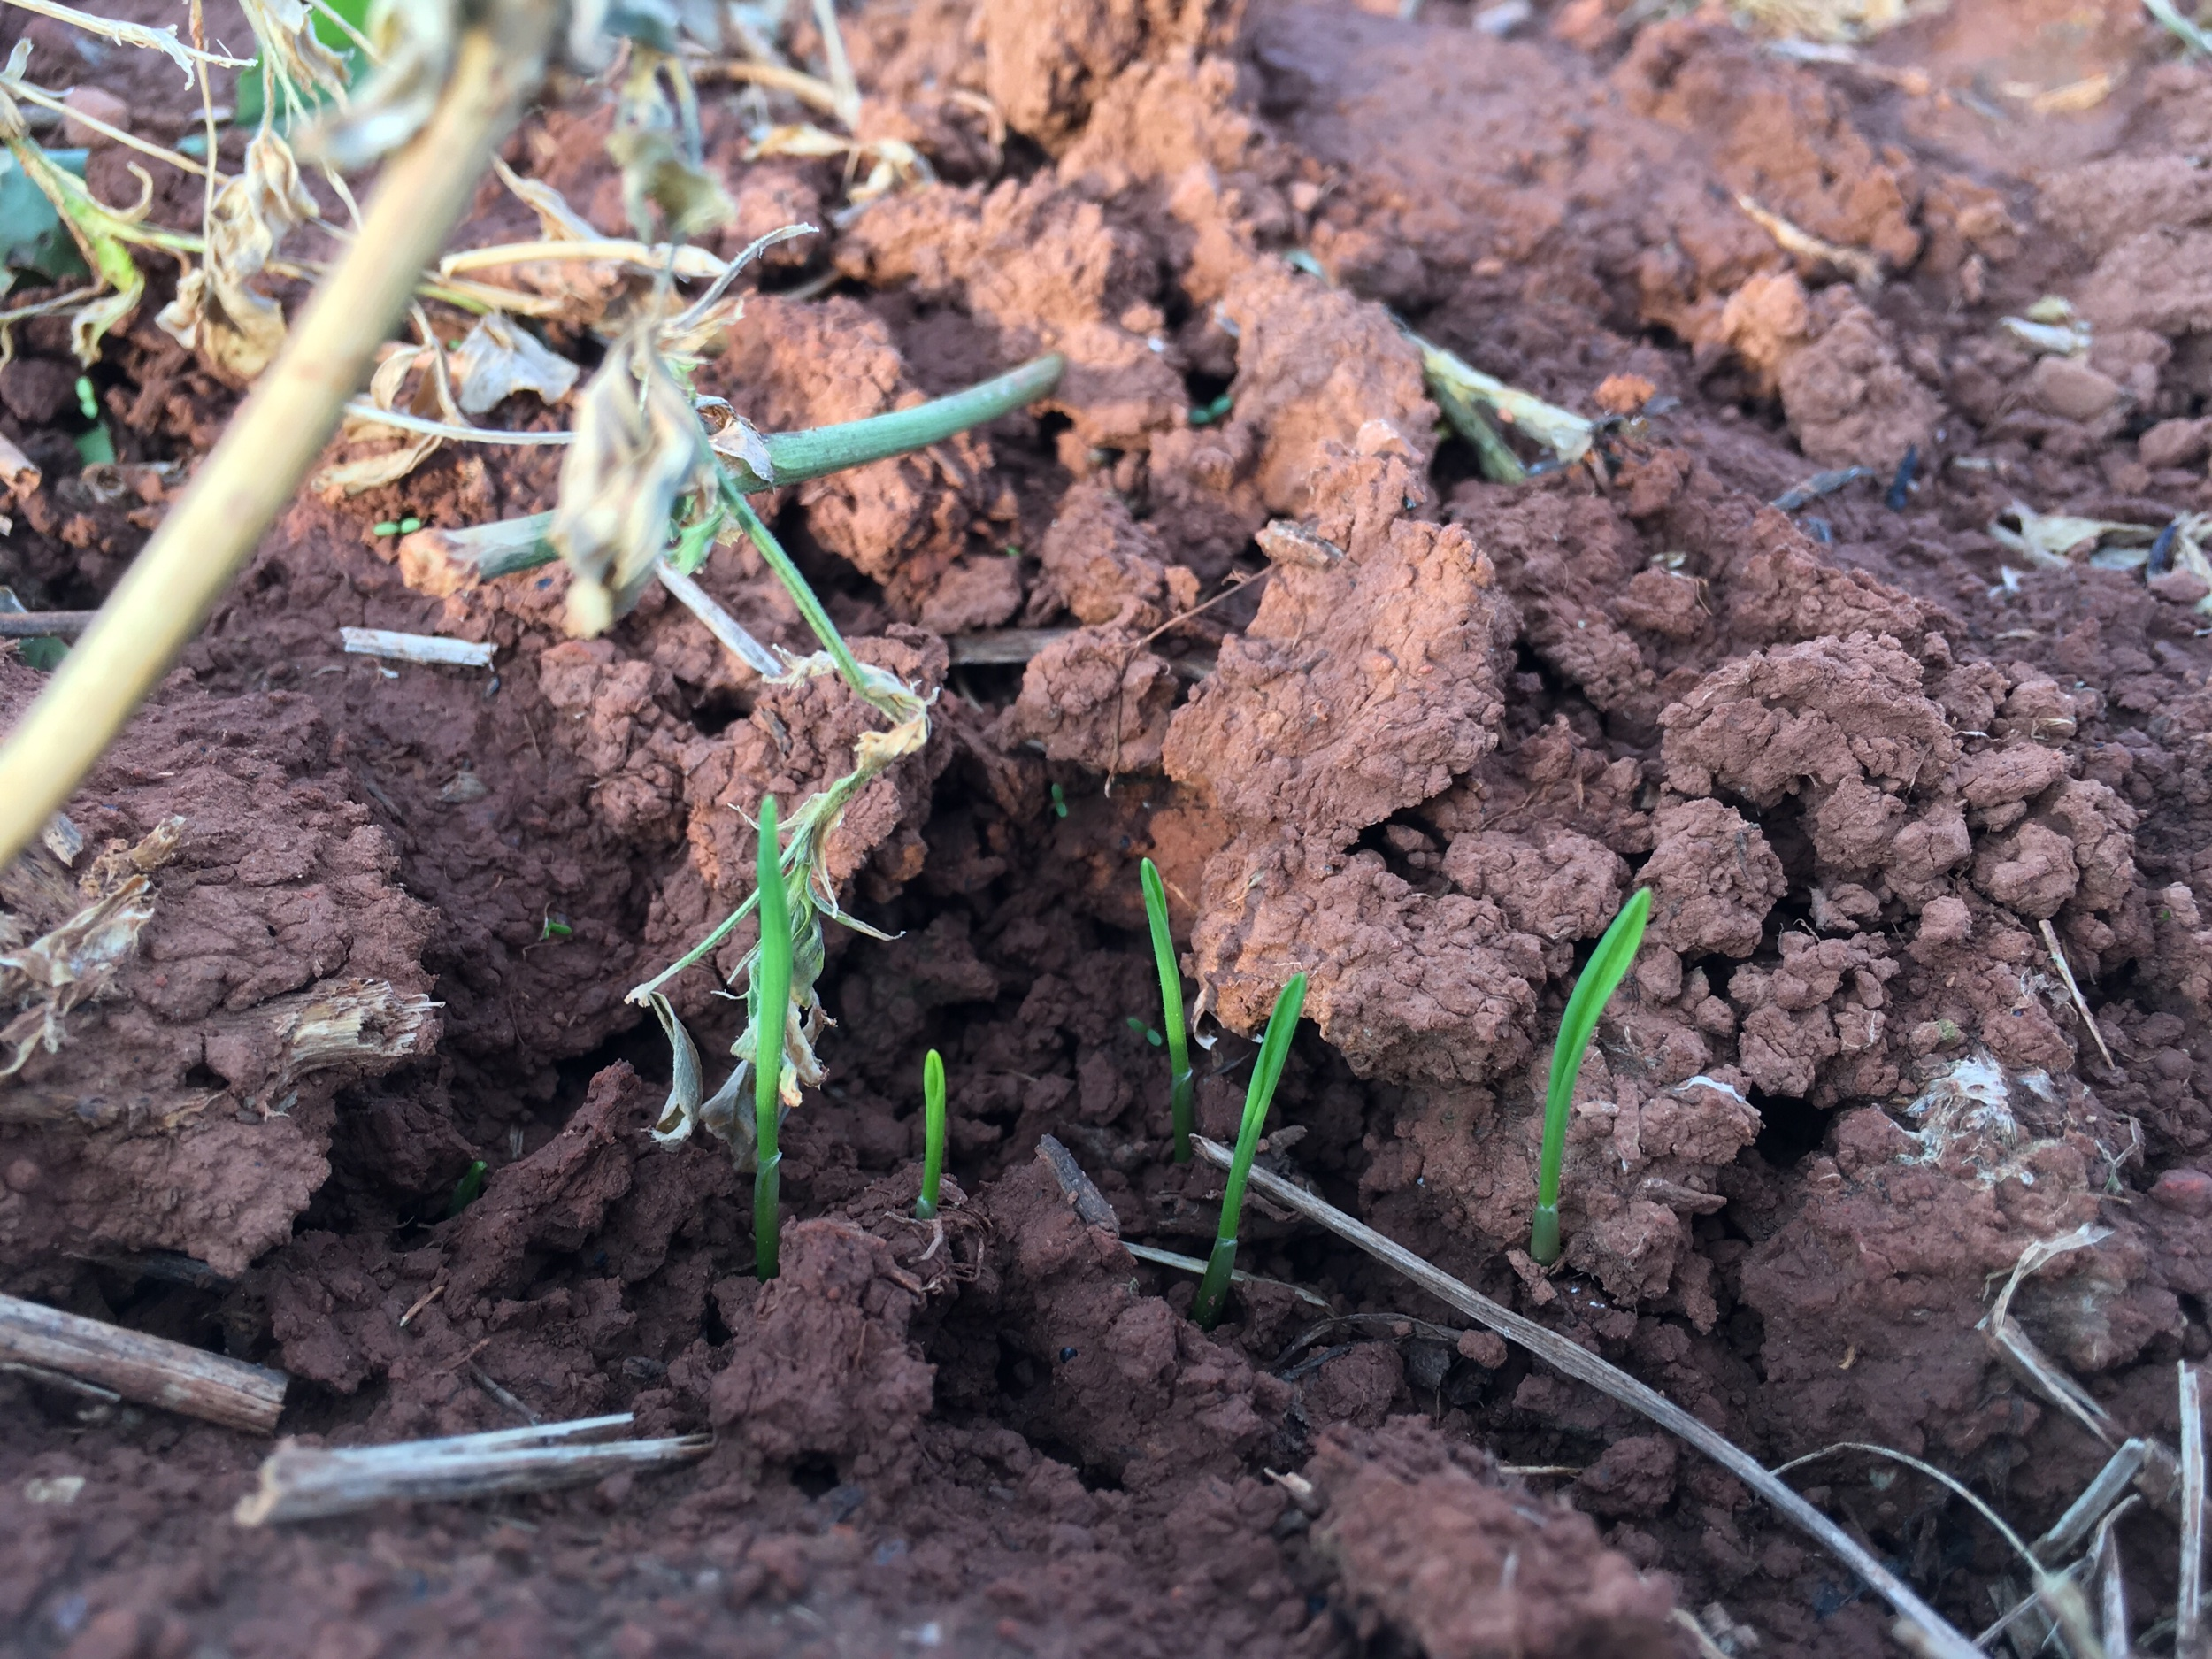 Winter wheat 3 days after planting.